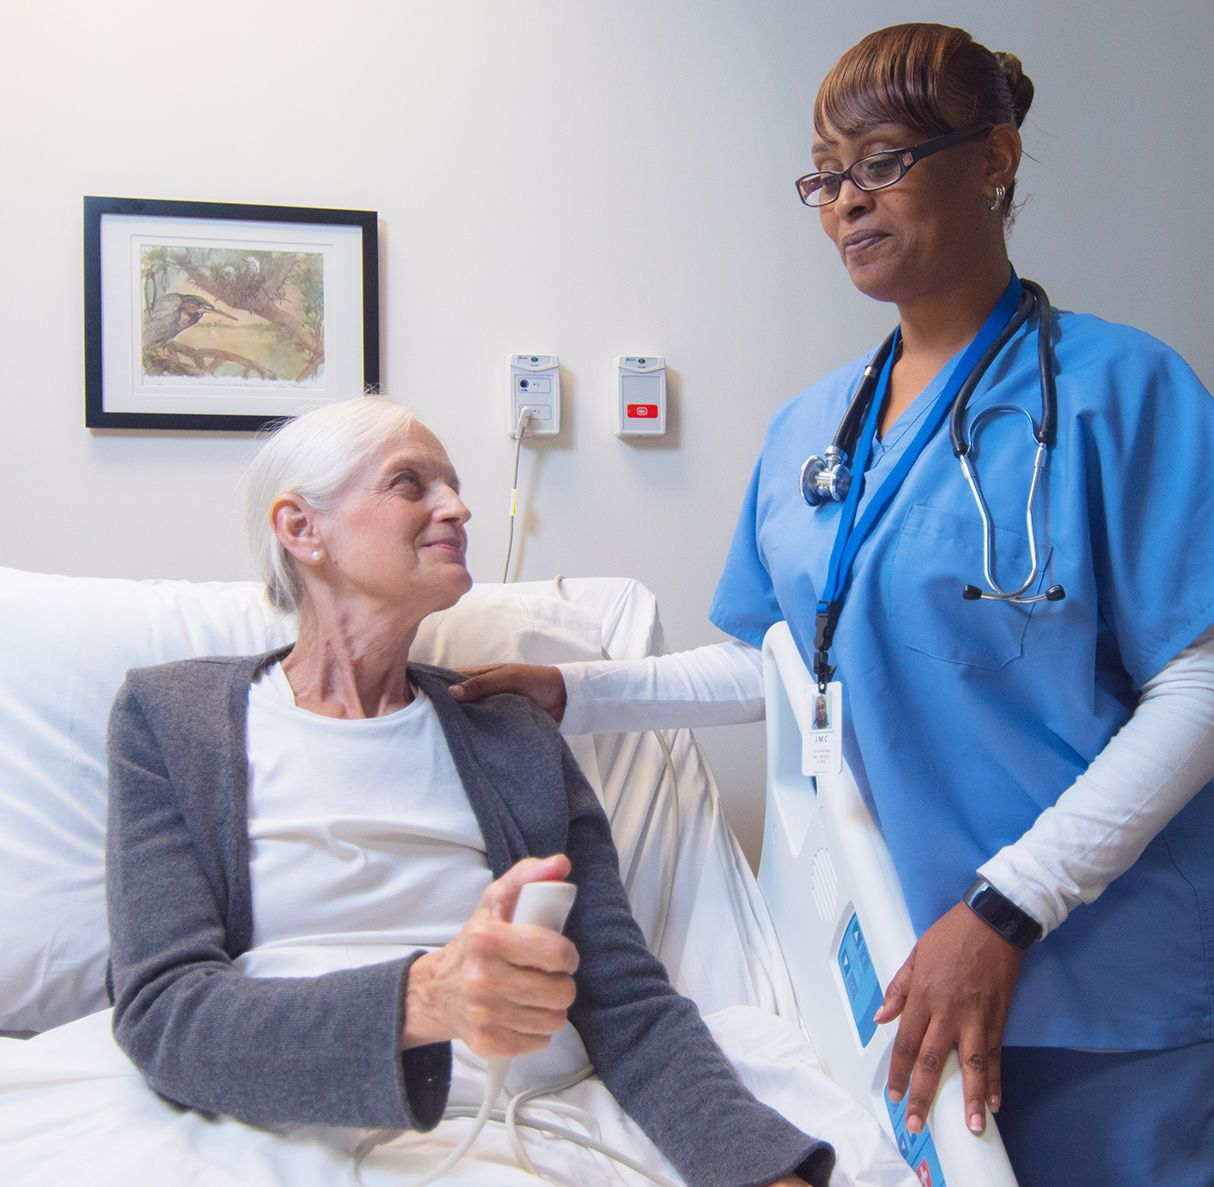 Pro-Alert 570 Nurse Call System Increases Resident Satisfaction